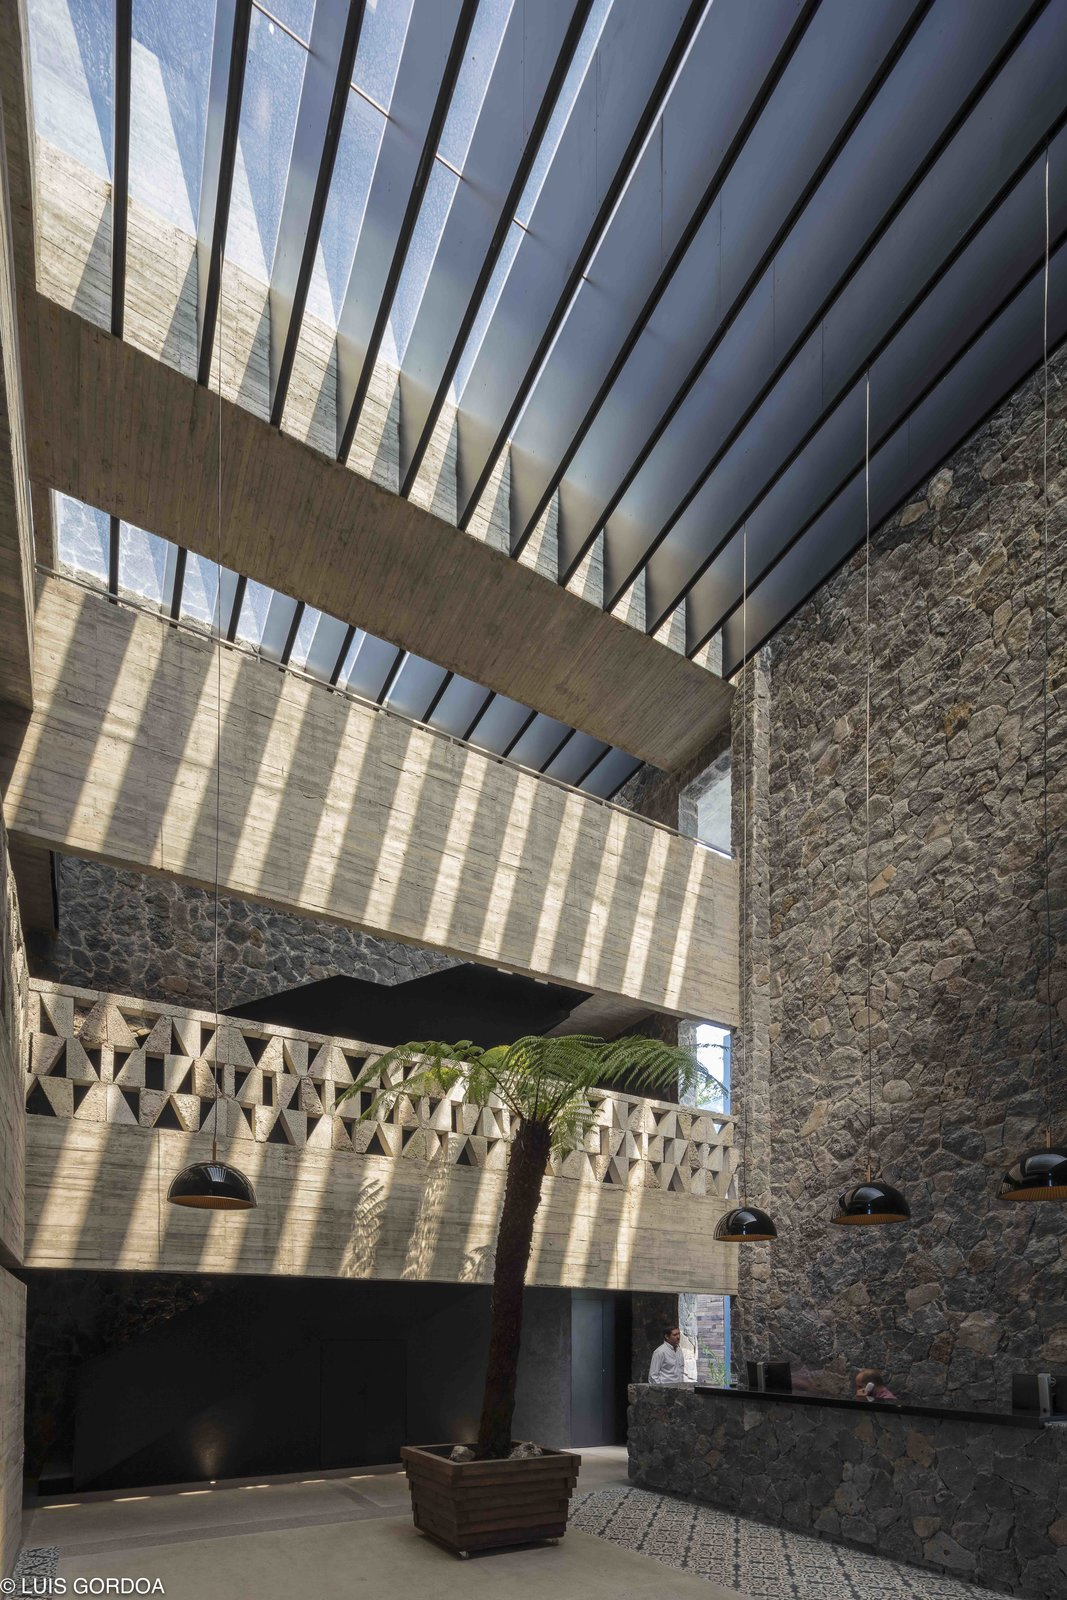 Photo 6 of 12 in A New Hotel in Morelos Combines Local Mexican Elements With Brutalist Architecture